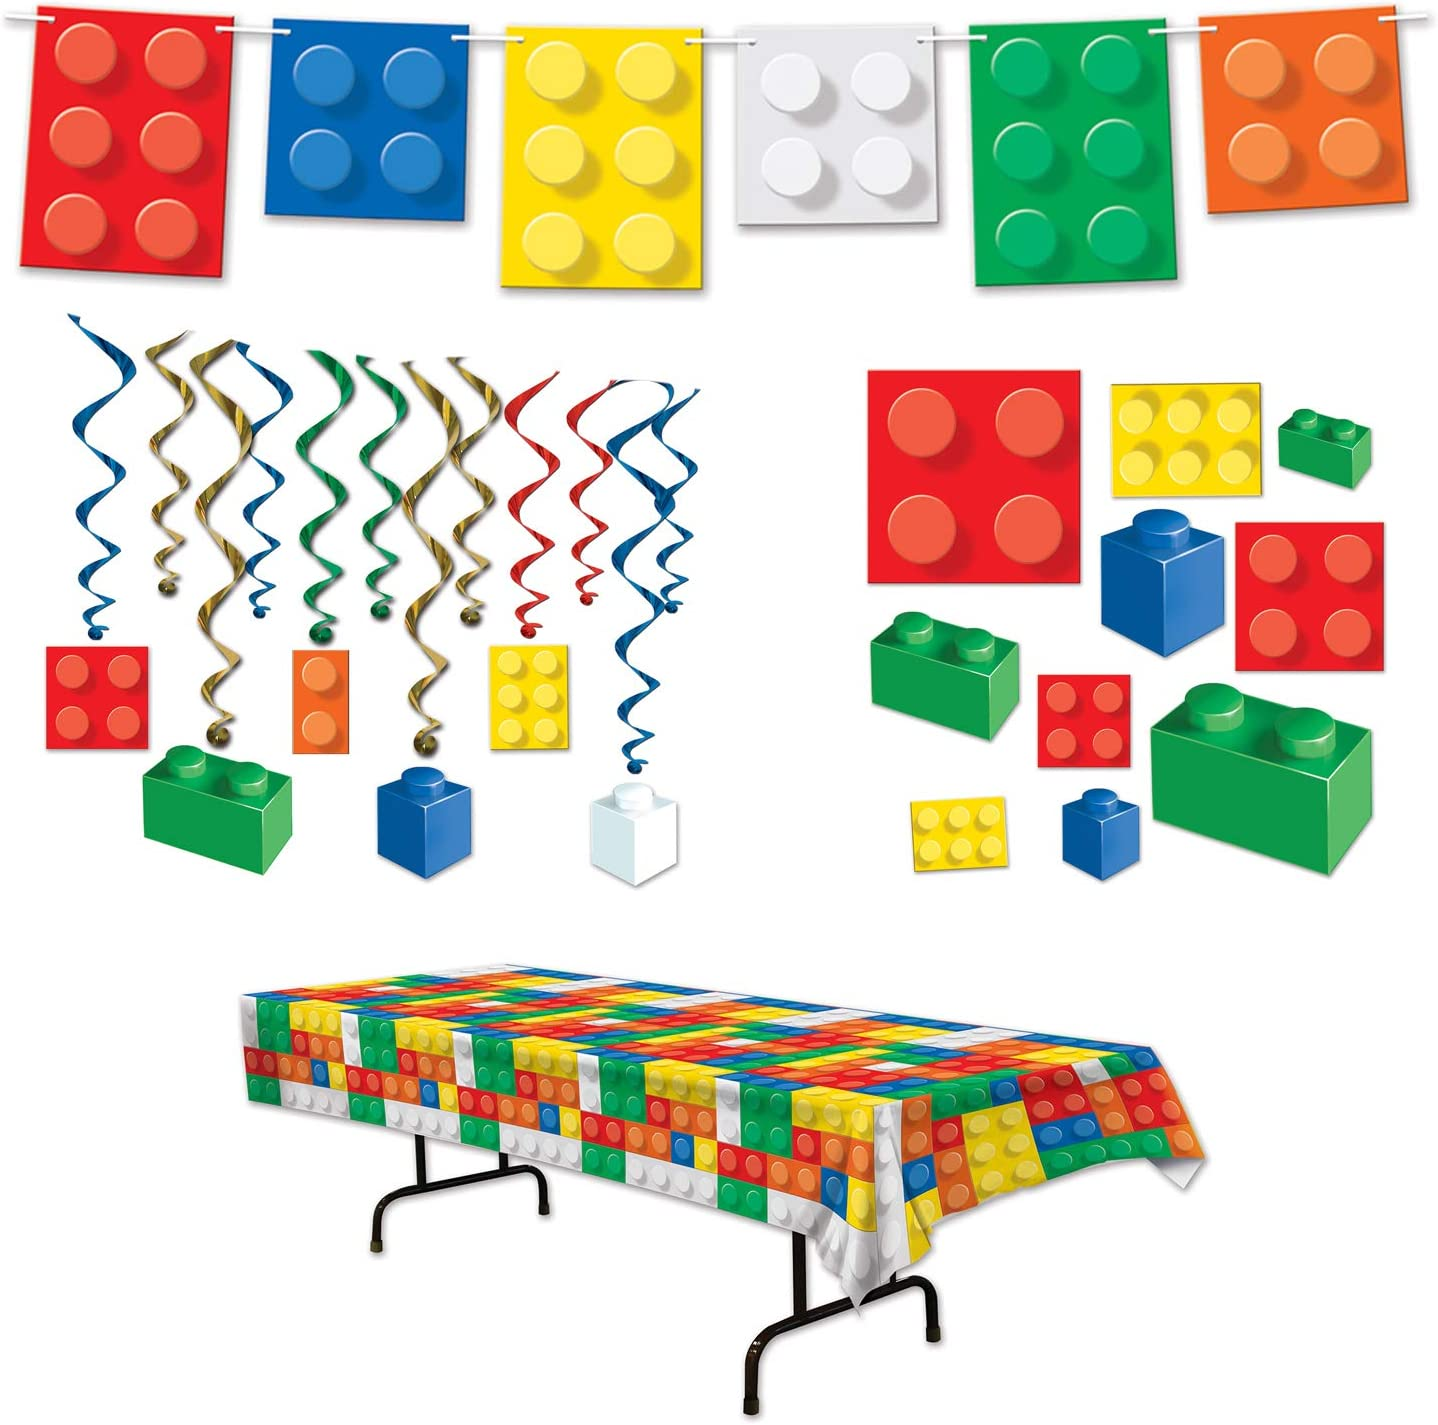 Manufacturer regenerated product Building Blocks Party Dangling Cutout Whirls Tablecover Streamer New arrival